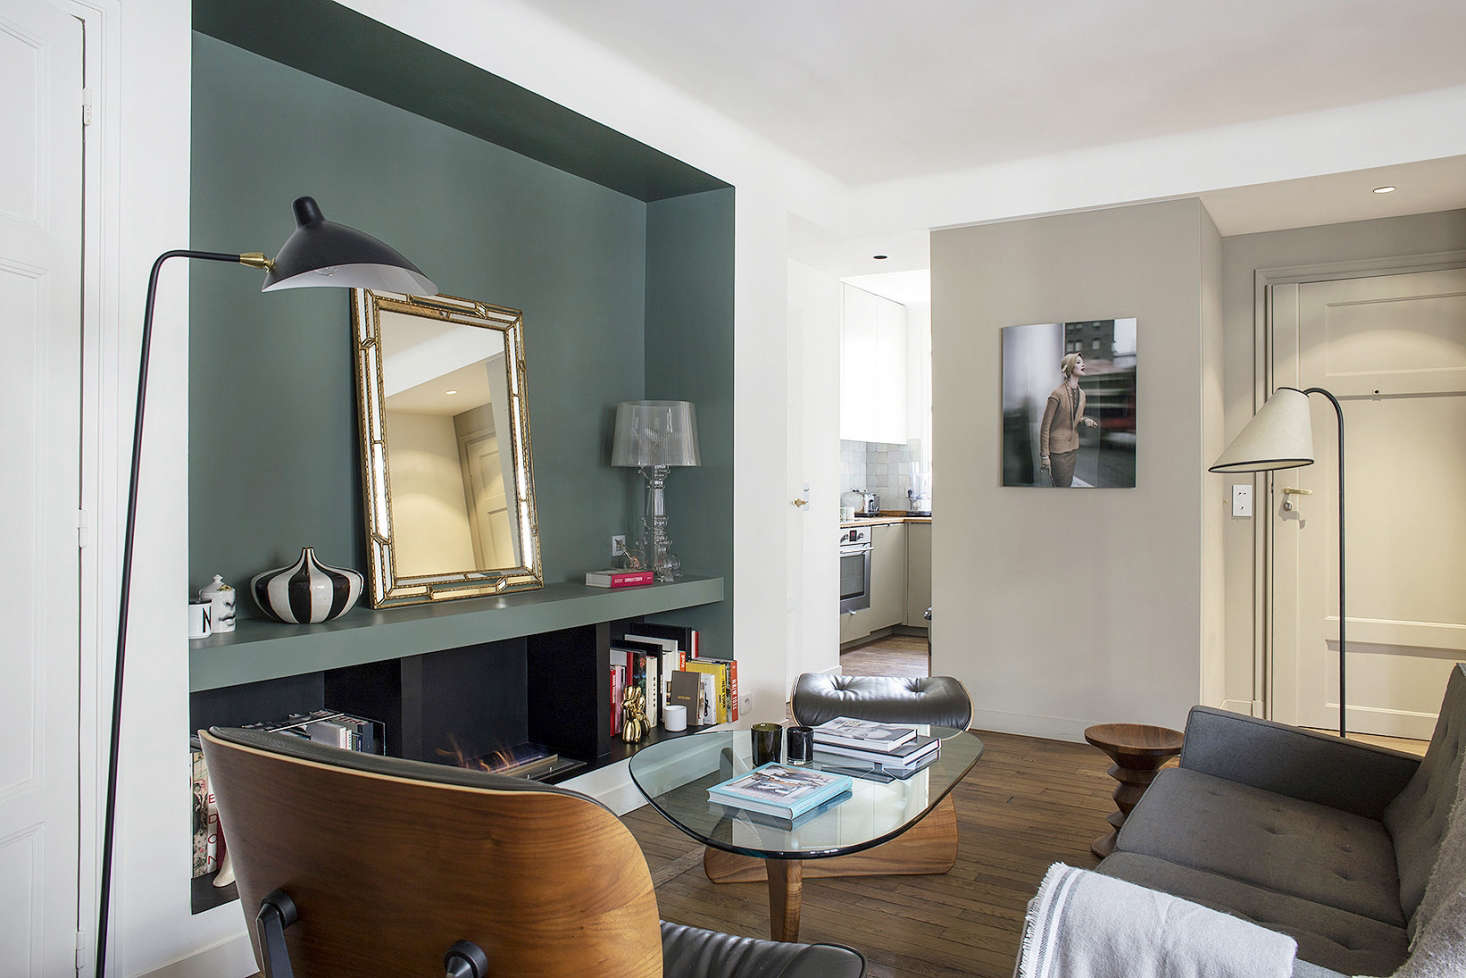 9 SmallSpace Ideas to Steal from a Tiny Paris Apartment